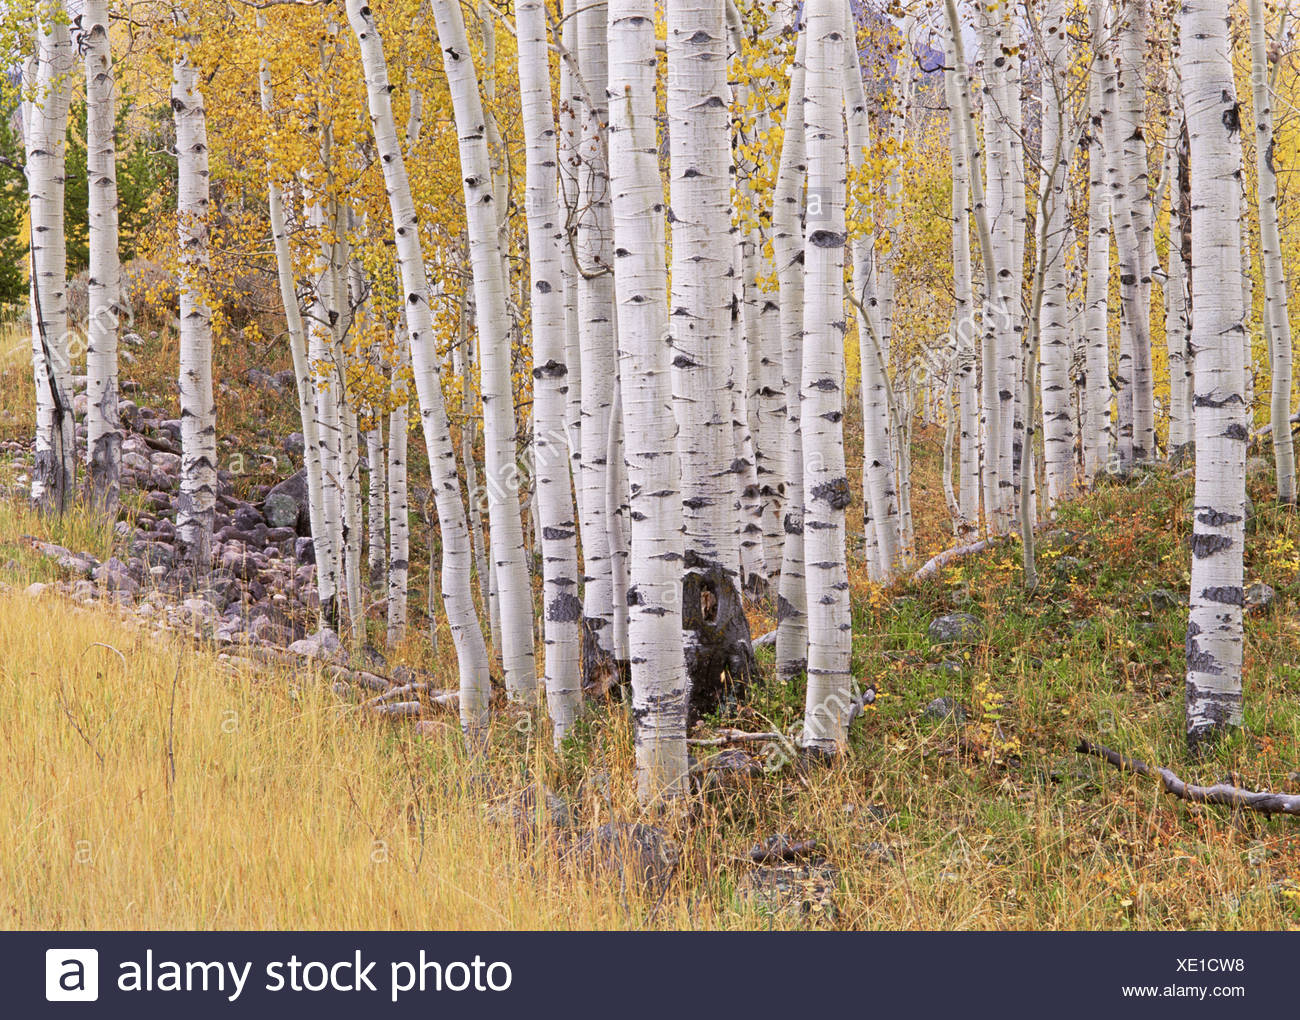 Aspen trees in autumn with white bark and yellow leaves. Yellow grasses of the understorey. Wasatch National forest in Utah. - Stock Image